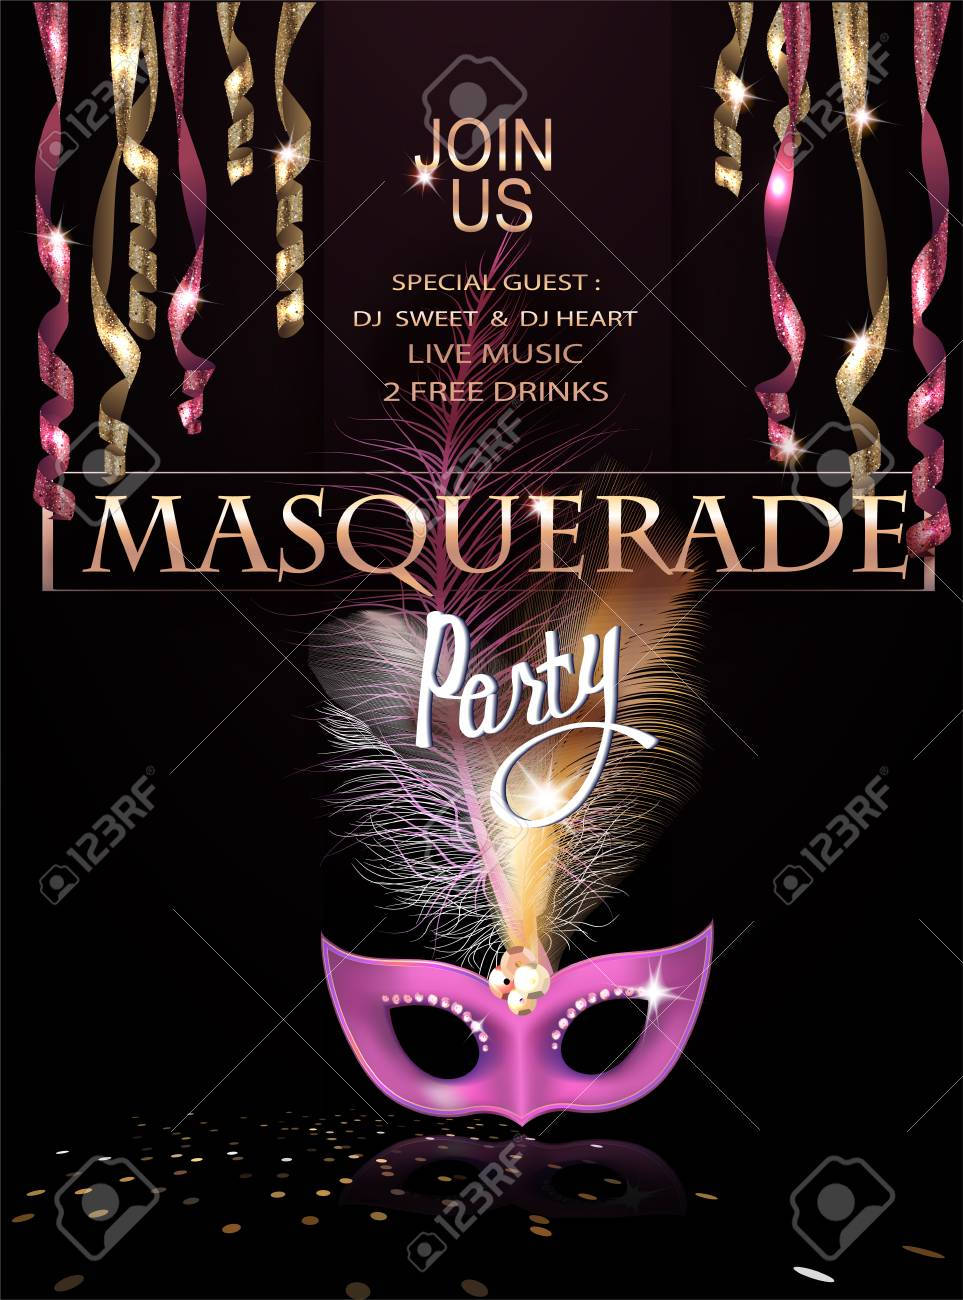 Masquerade Party Invitation Card With Hanging Serpentine And